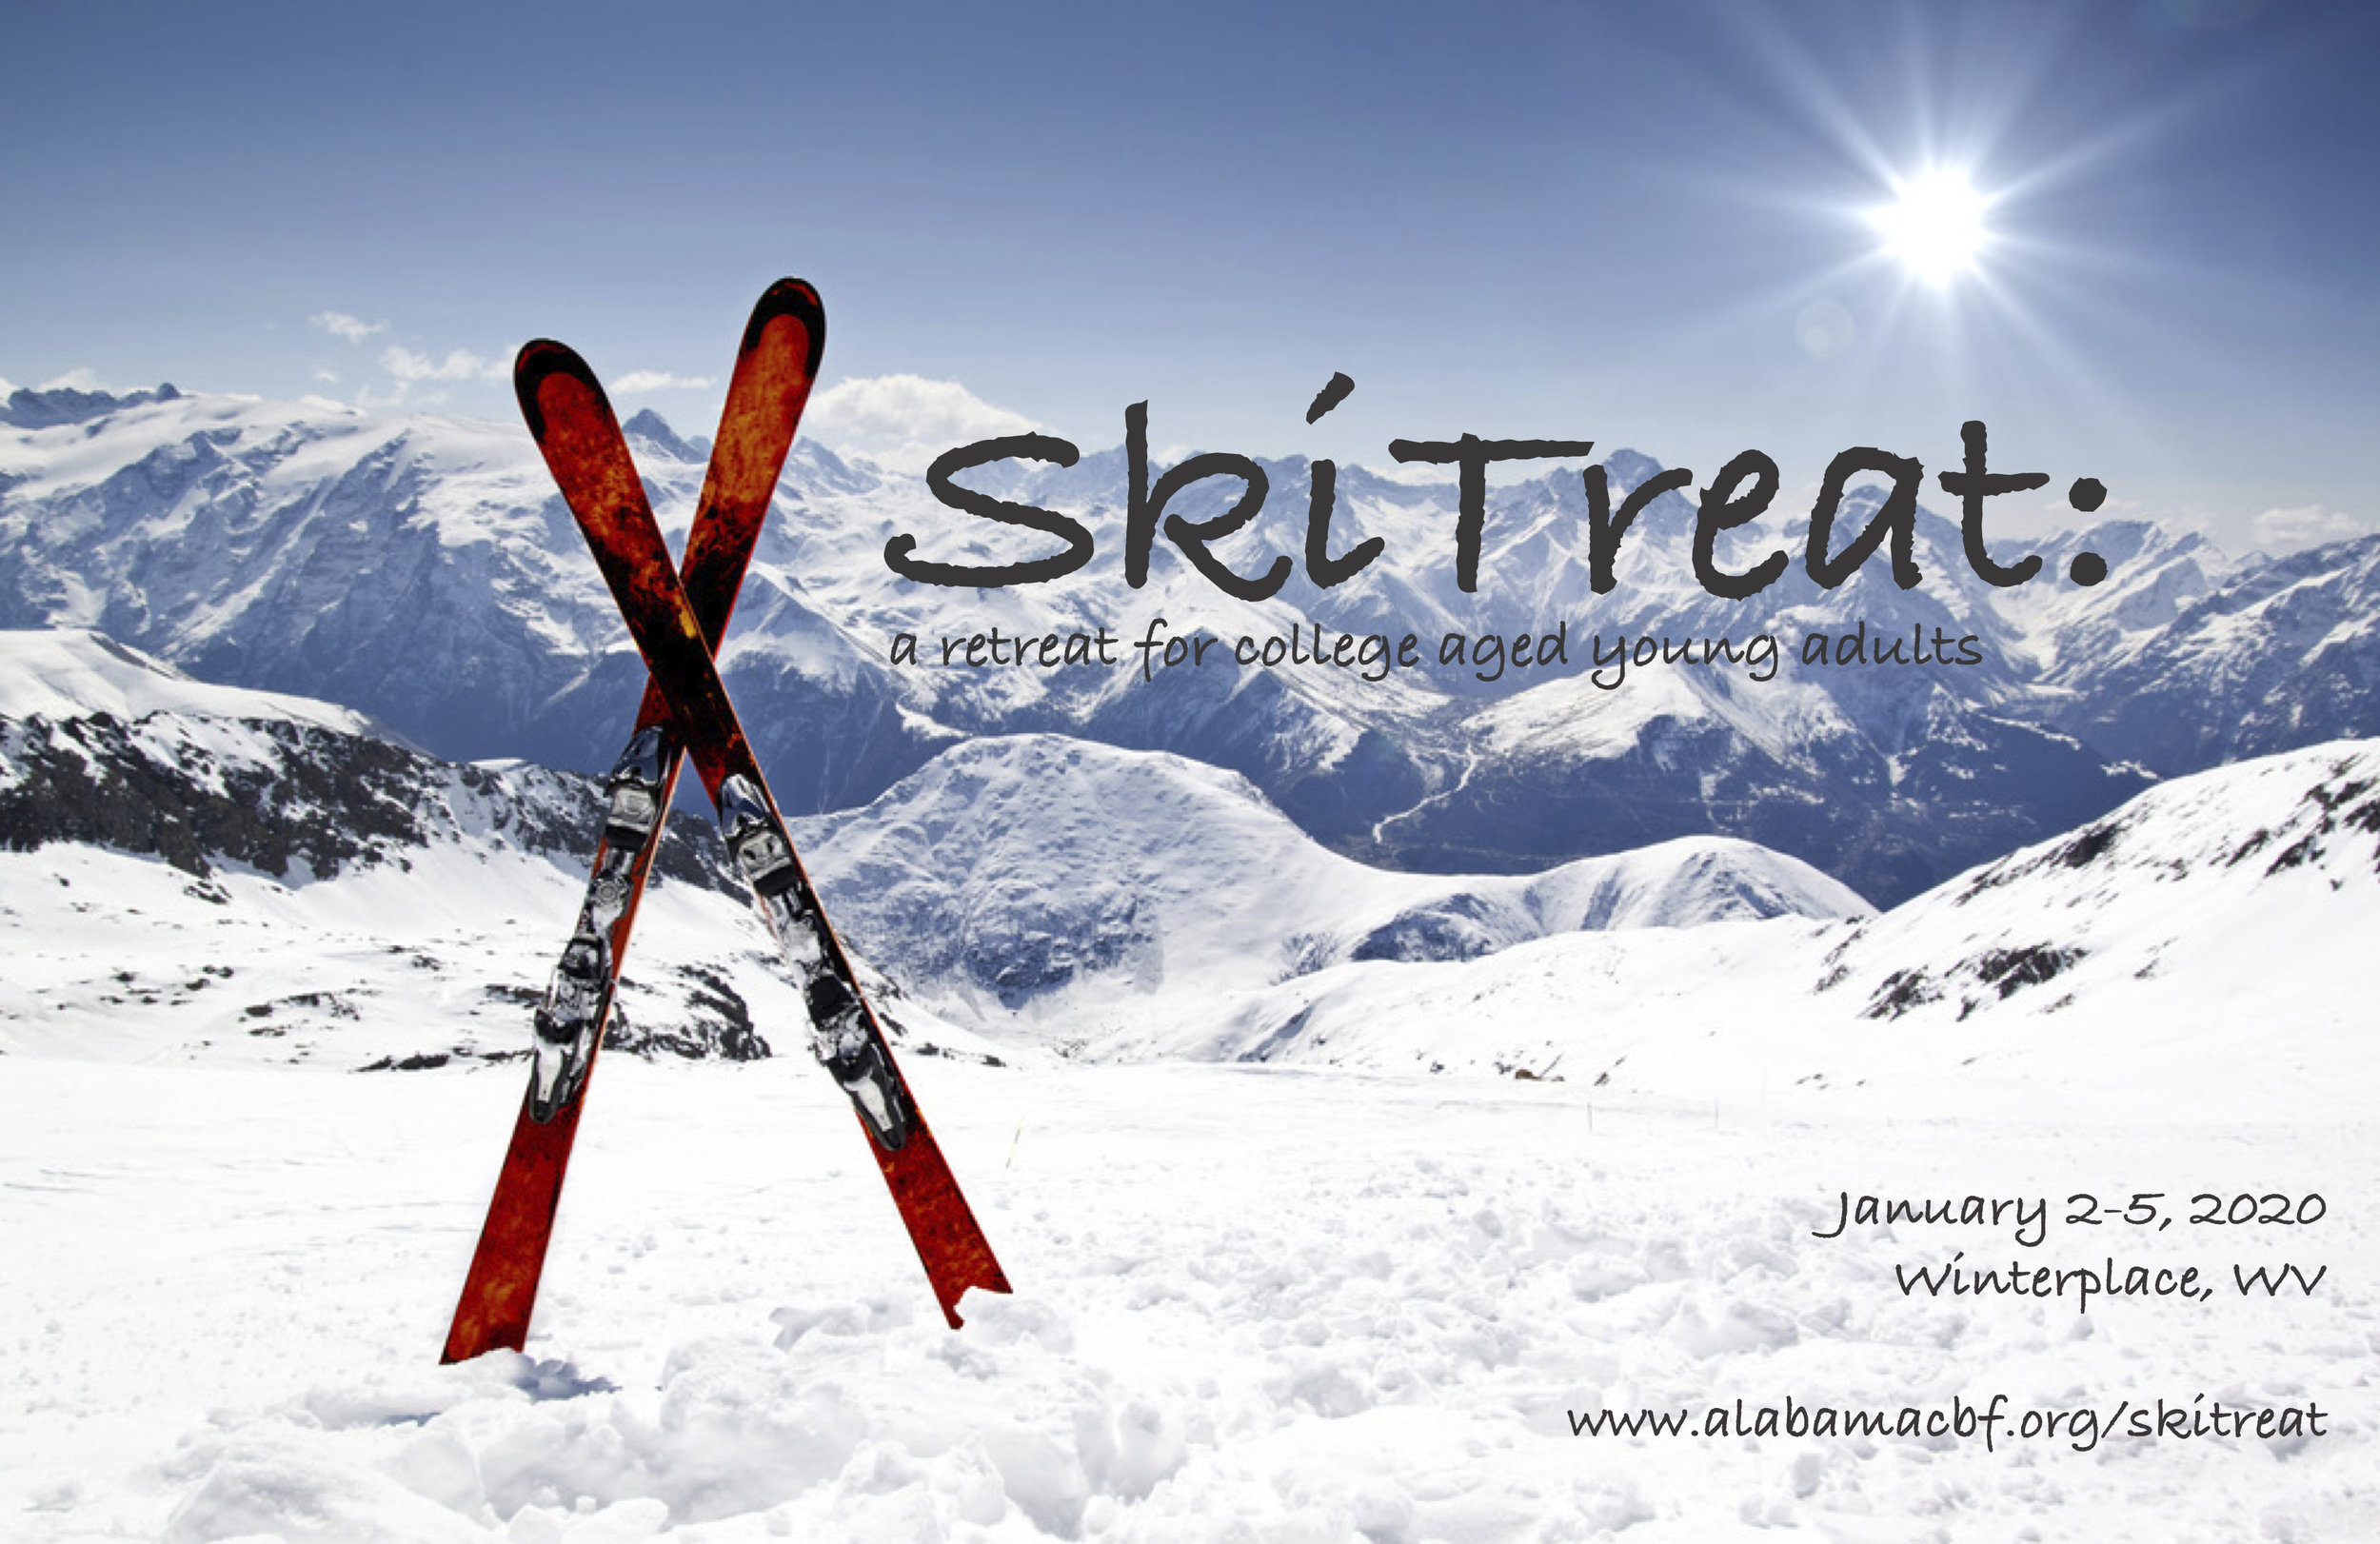 ski treat ad.jpg